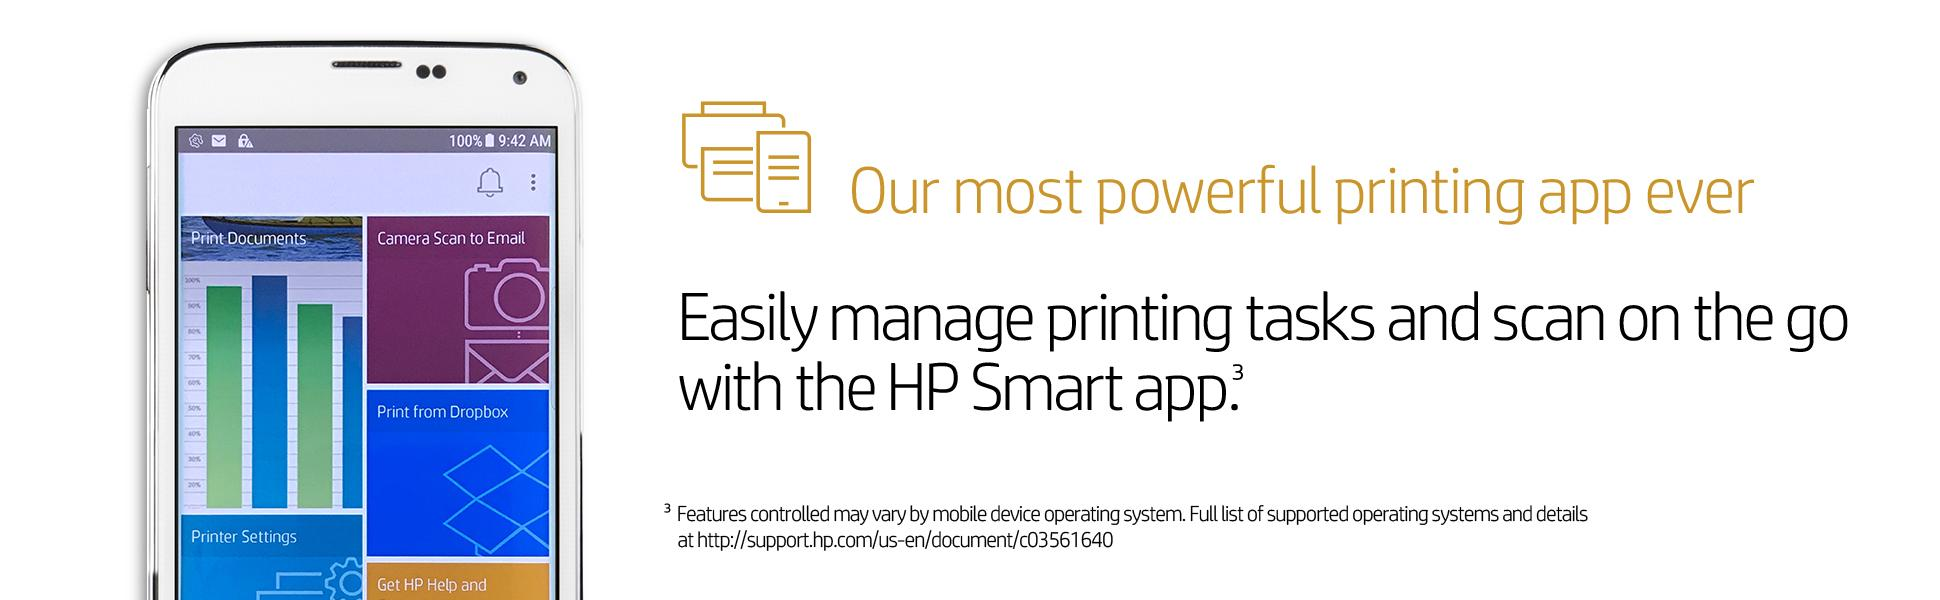 HP LaserJet Pro M426fdw Multifunction Wireless Laser Printer with Duplex  Printing (F6W15A) with Standard Yield Black Toner Cartridge